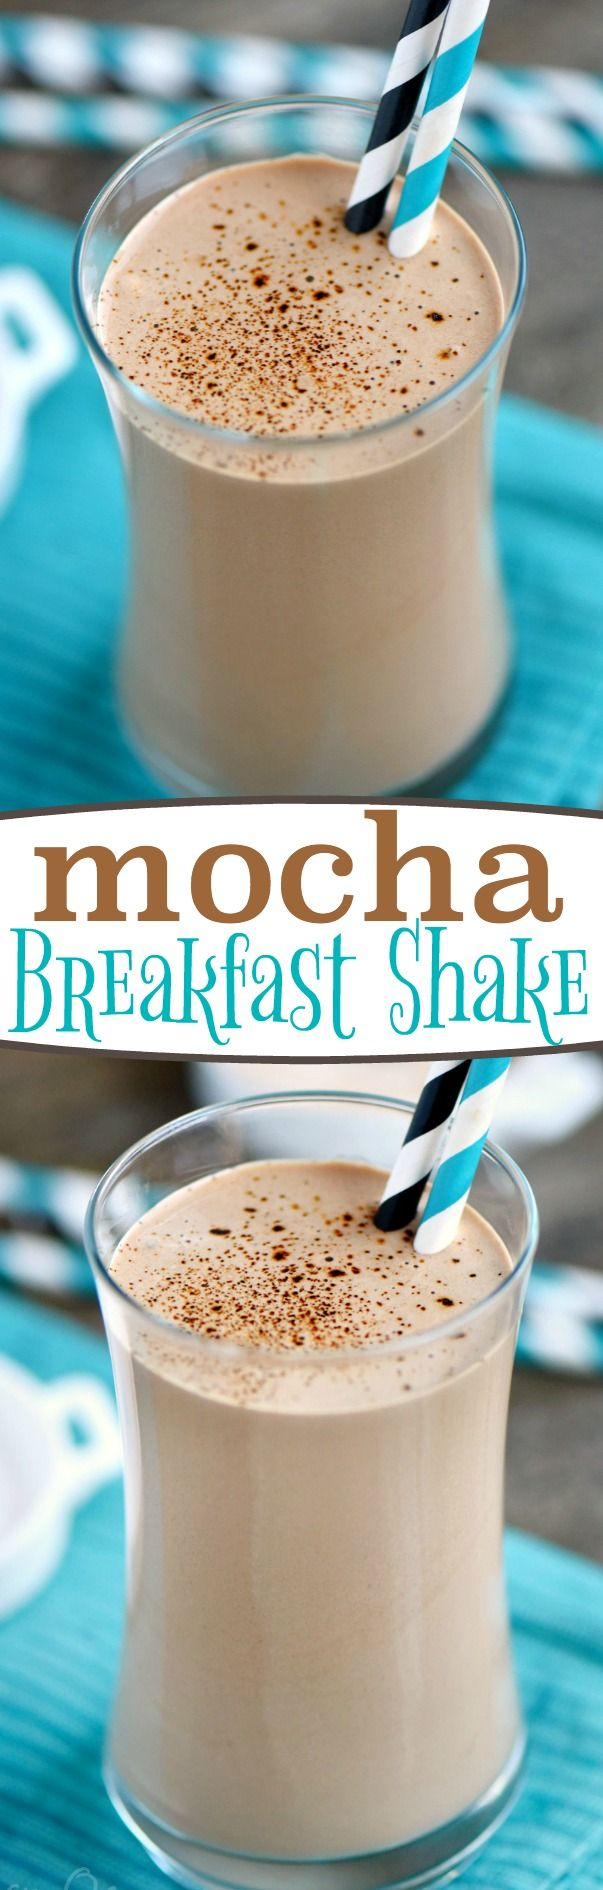 Mocha Breakfast Shake-made with Greek yogurt for a wake-me-up, protein-packed breakfast